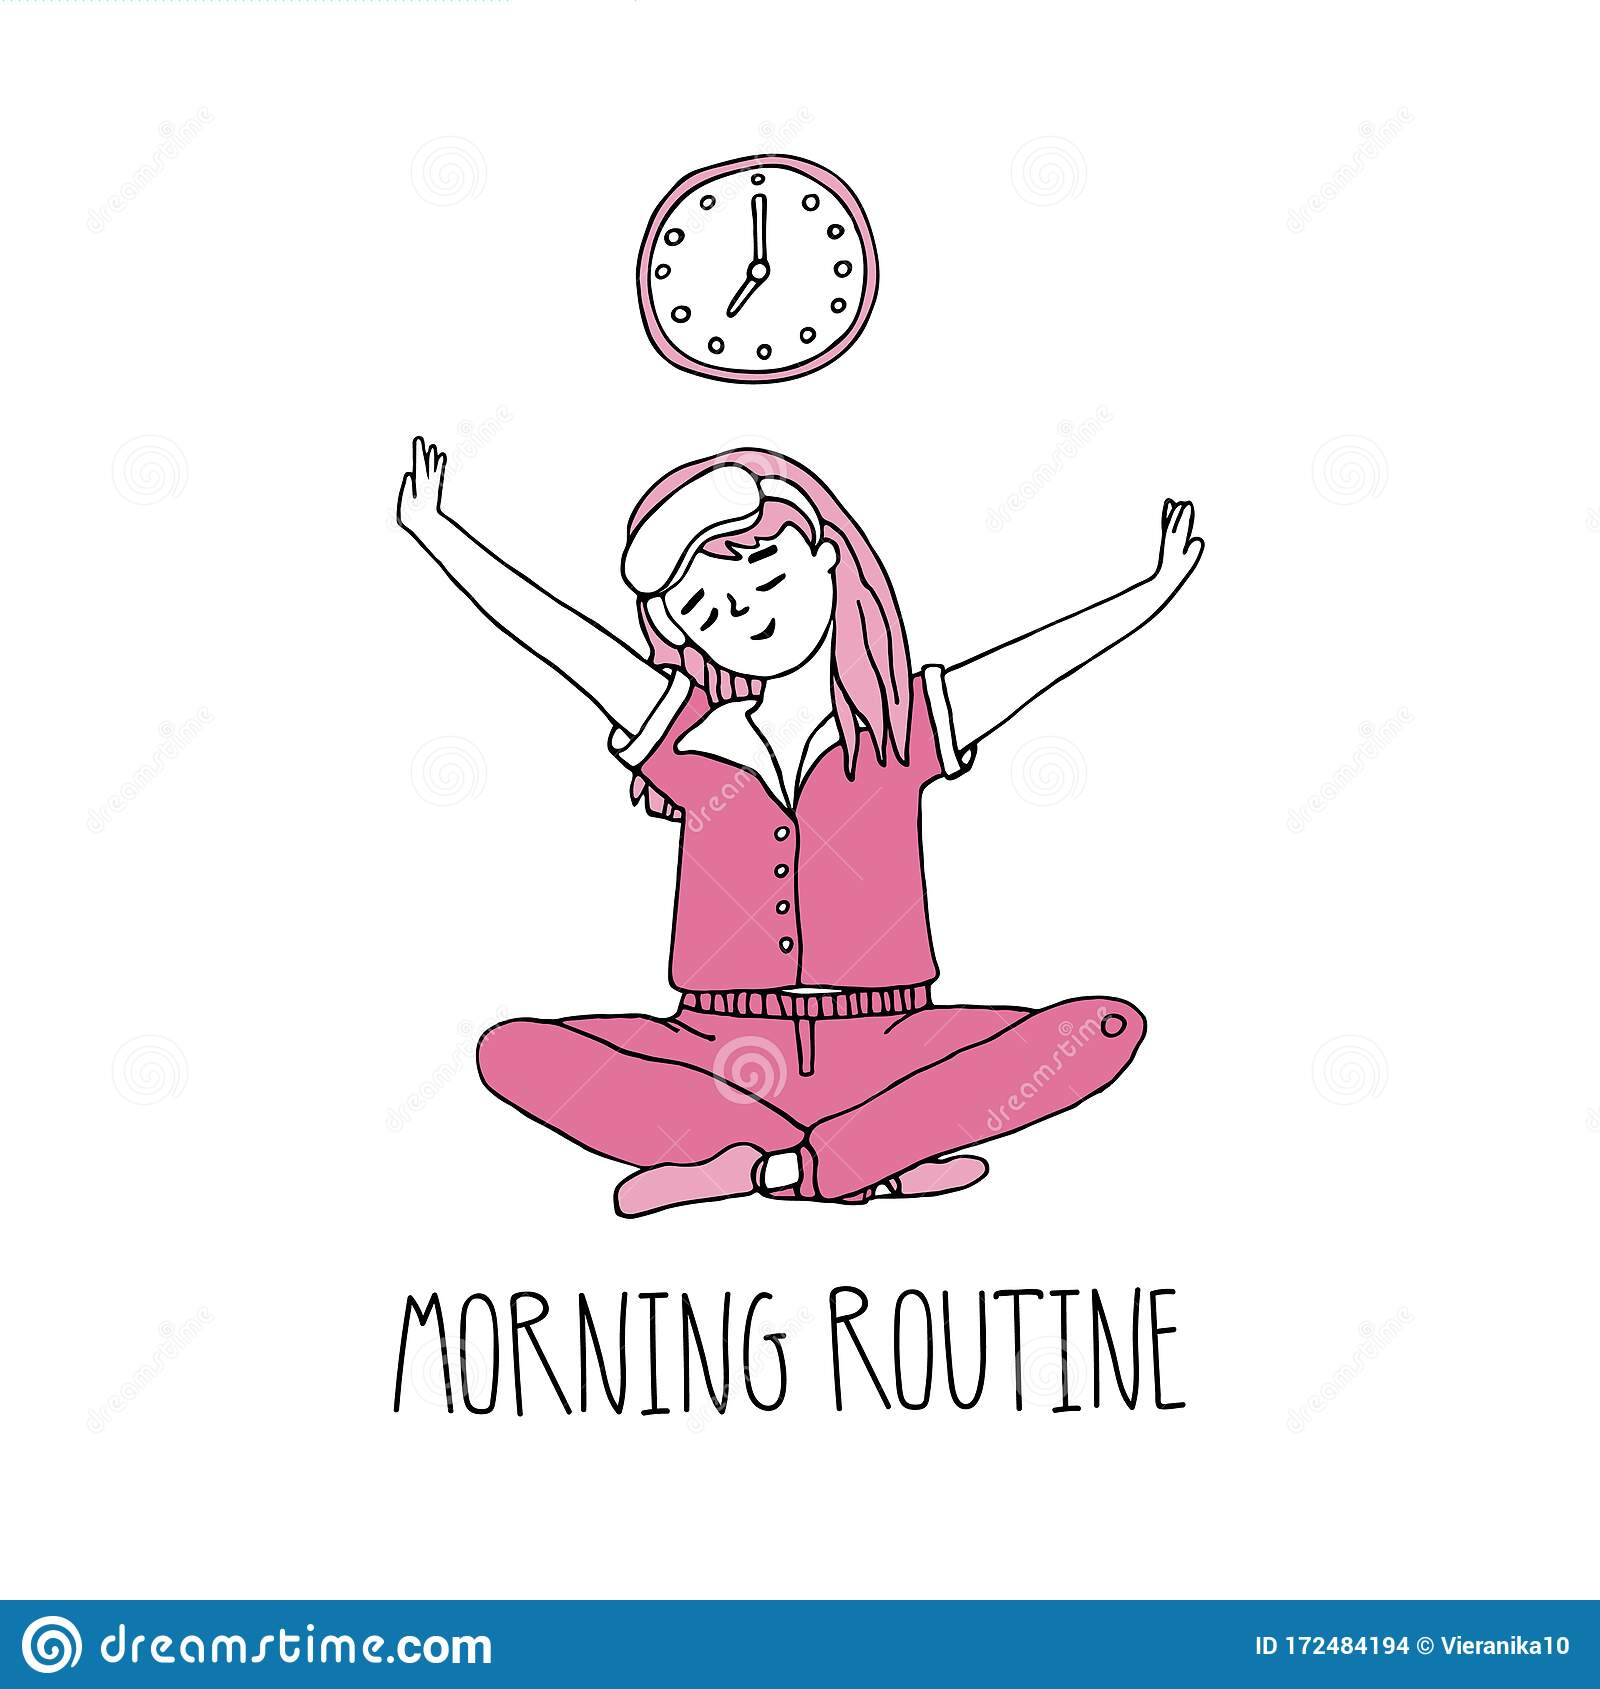 Morning Routine Concept Daily Morning Life Stock Vector Illustration Of Clean Lifestyle 172484194